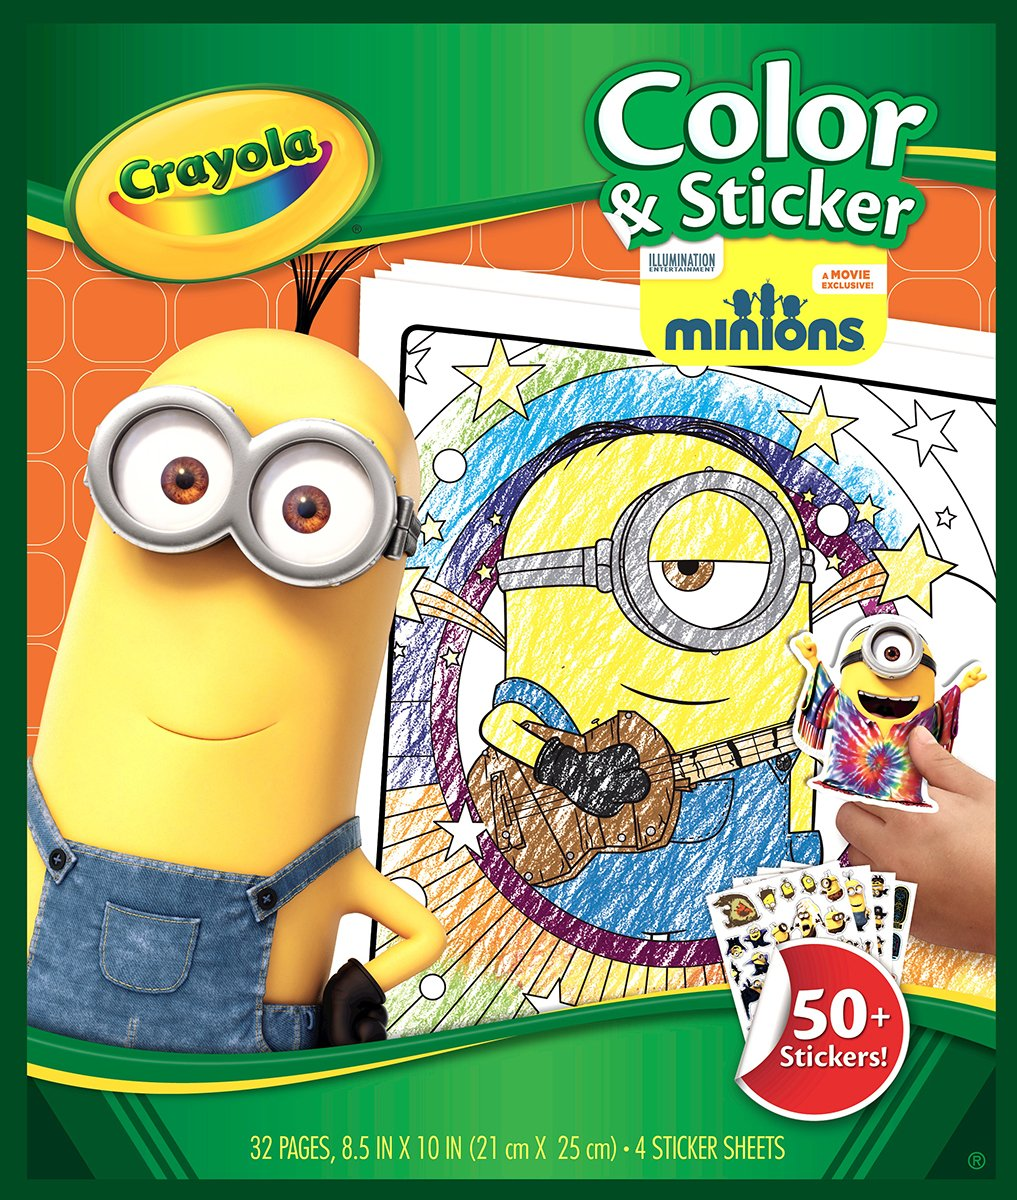 Amazoncom Crayola Color and Sticker Pages  Minions Toys  Games